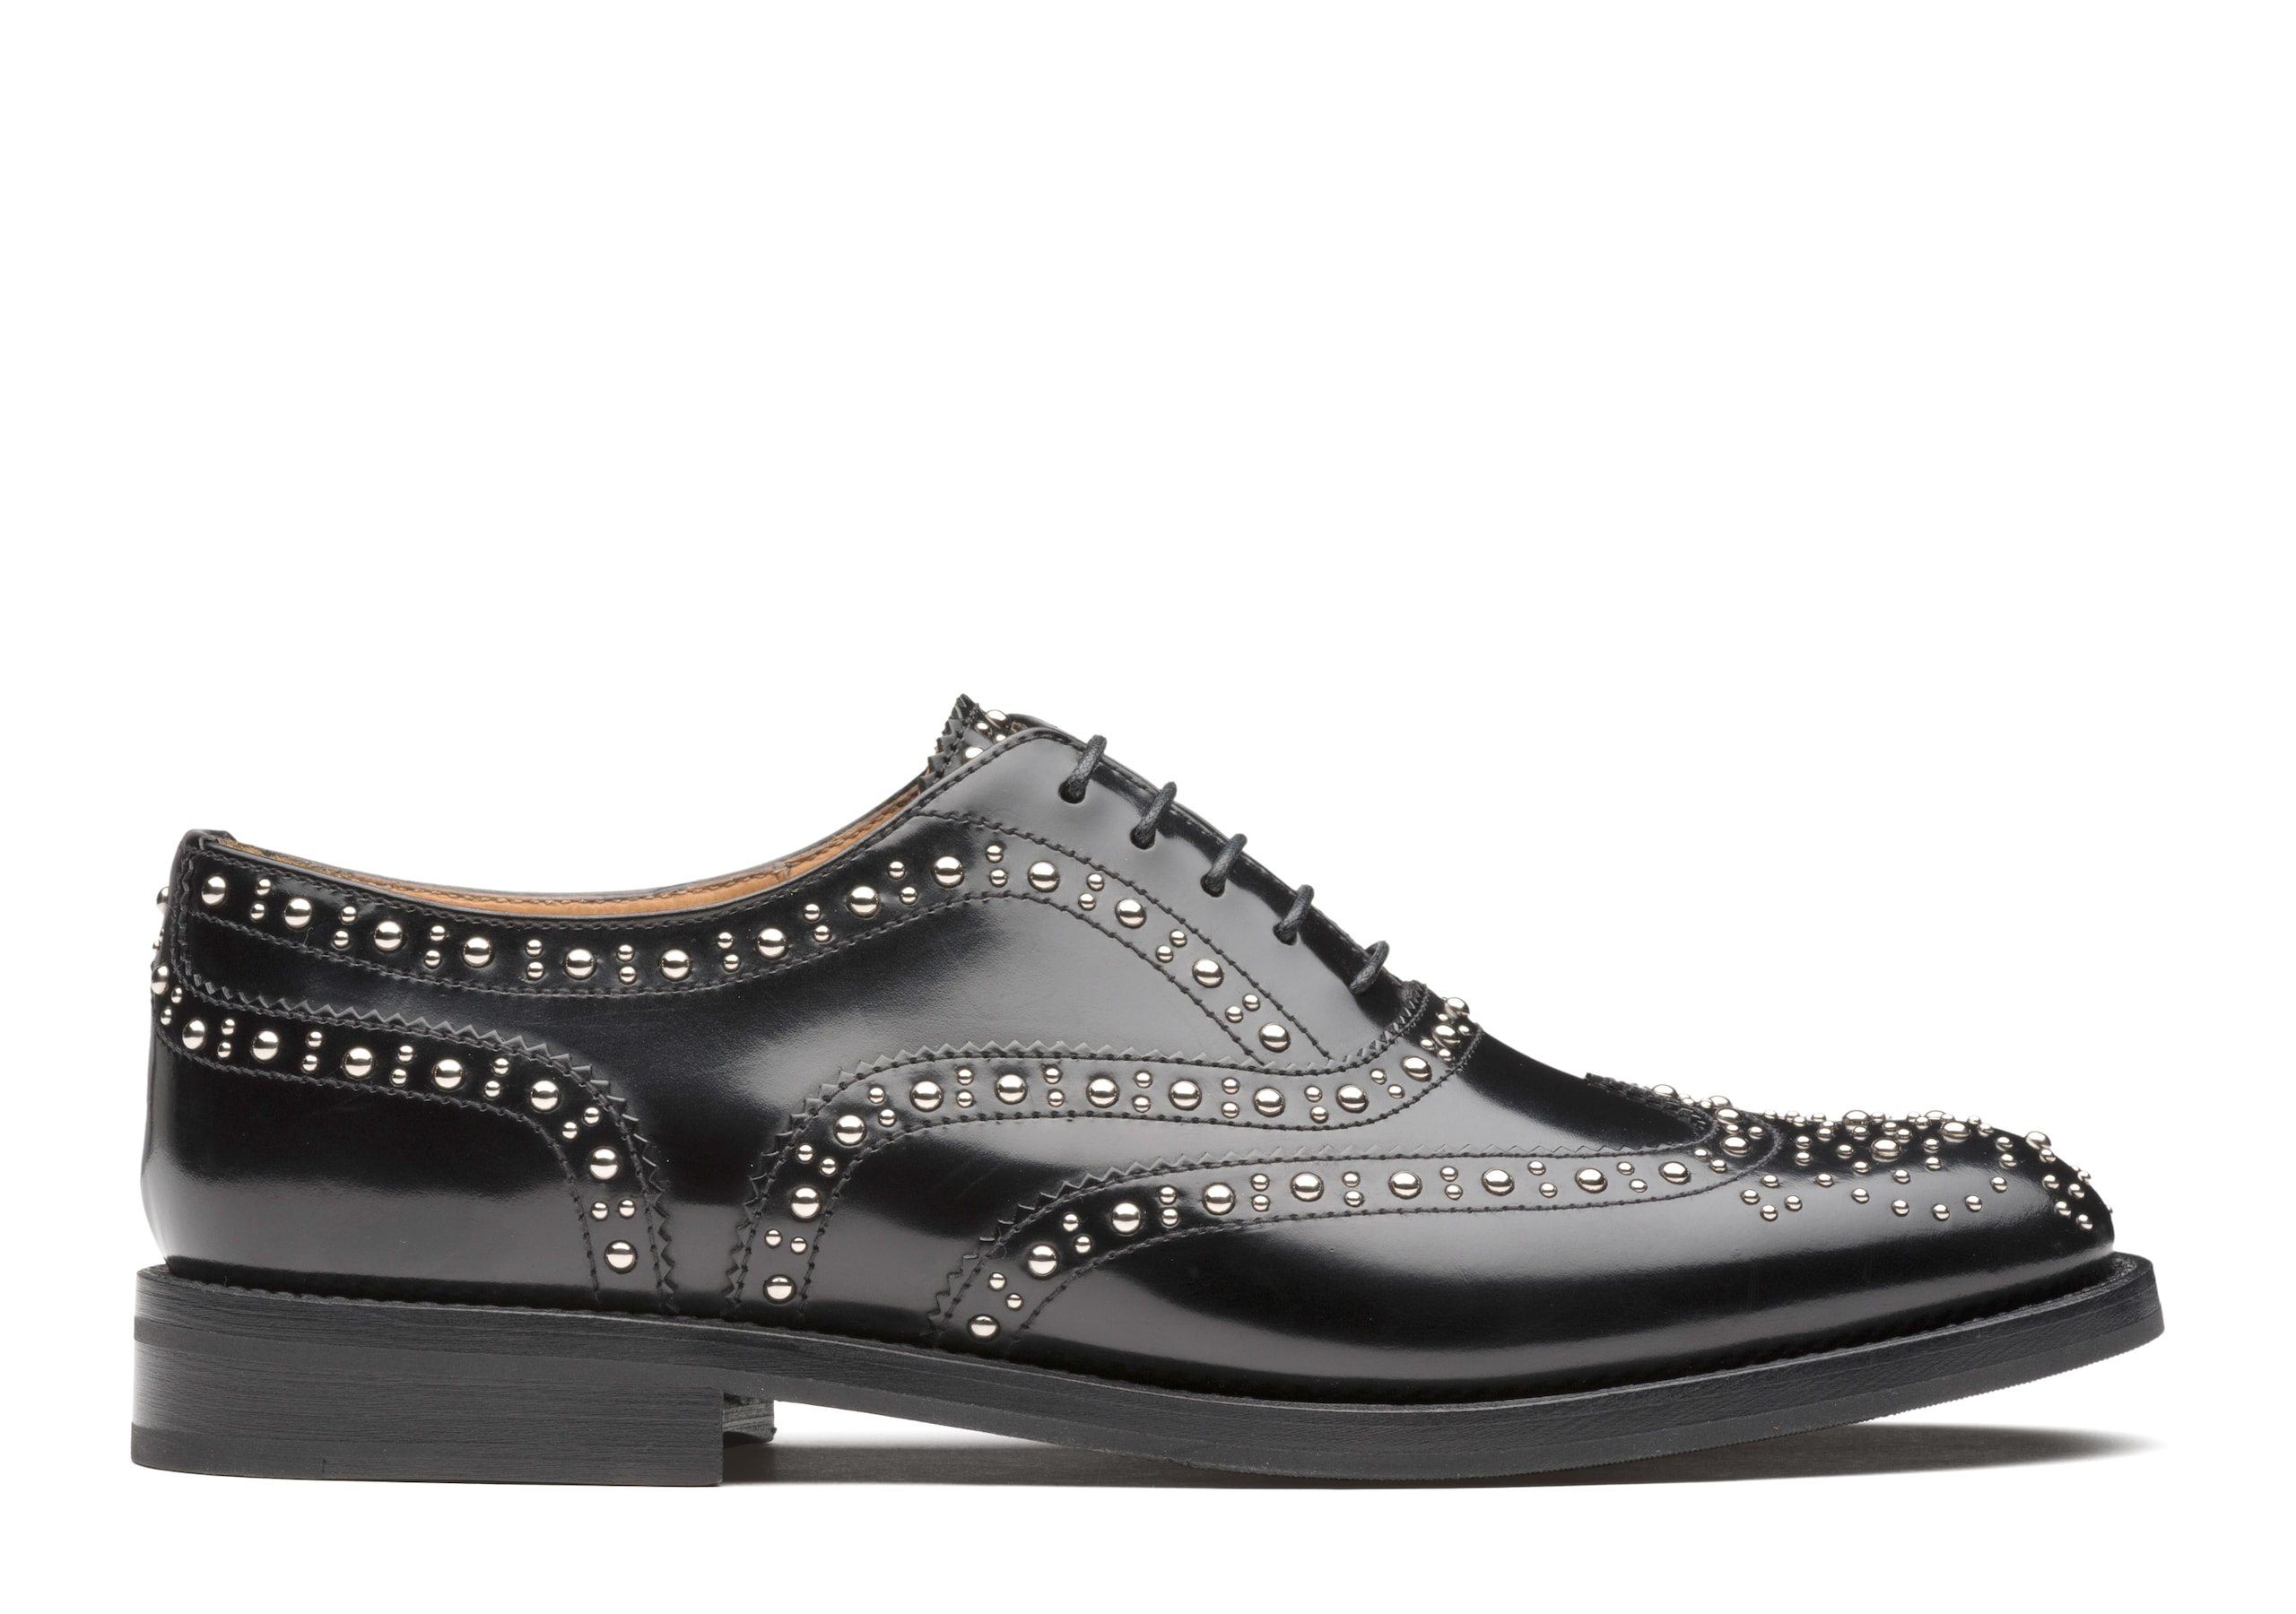 Burwood met. Church's Polished Binder Oxford Brogue  Stud Black